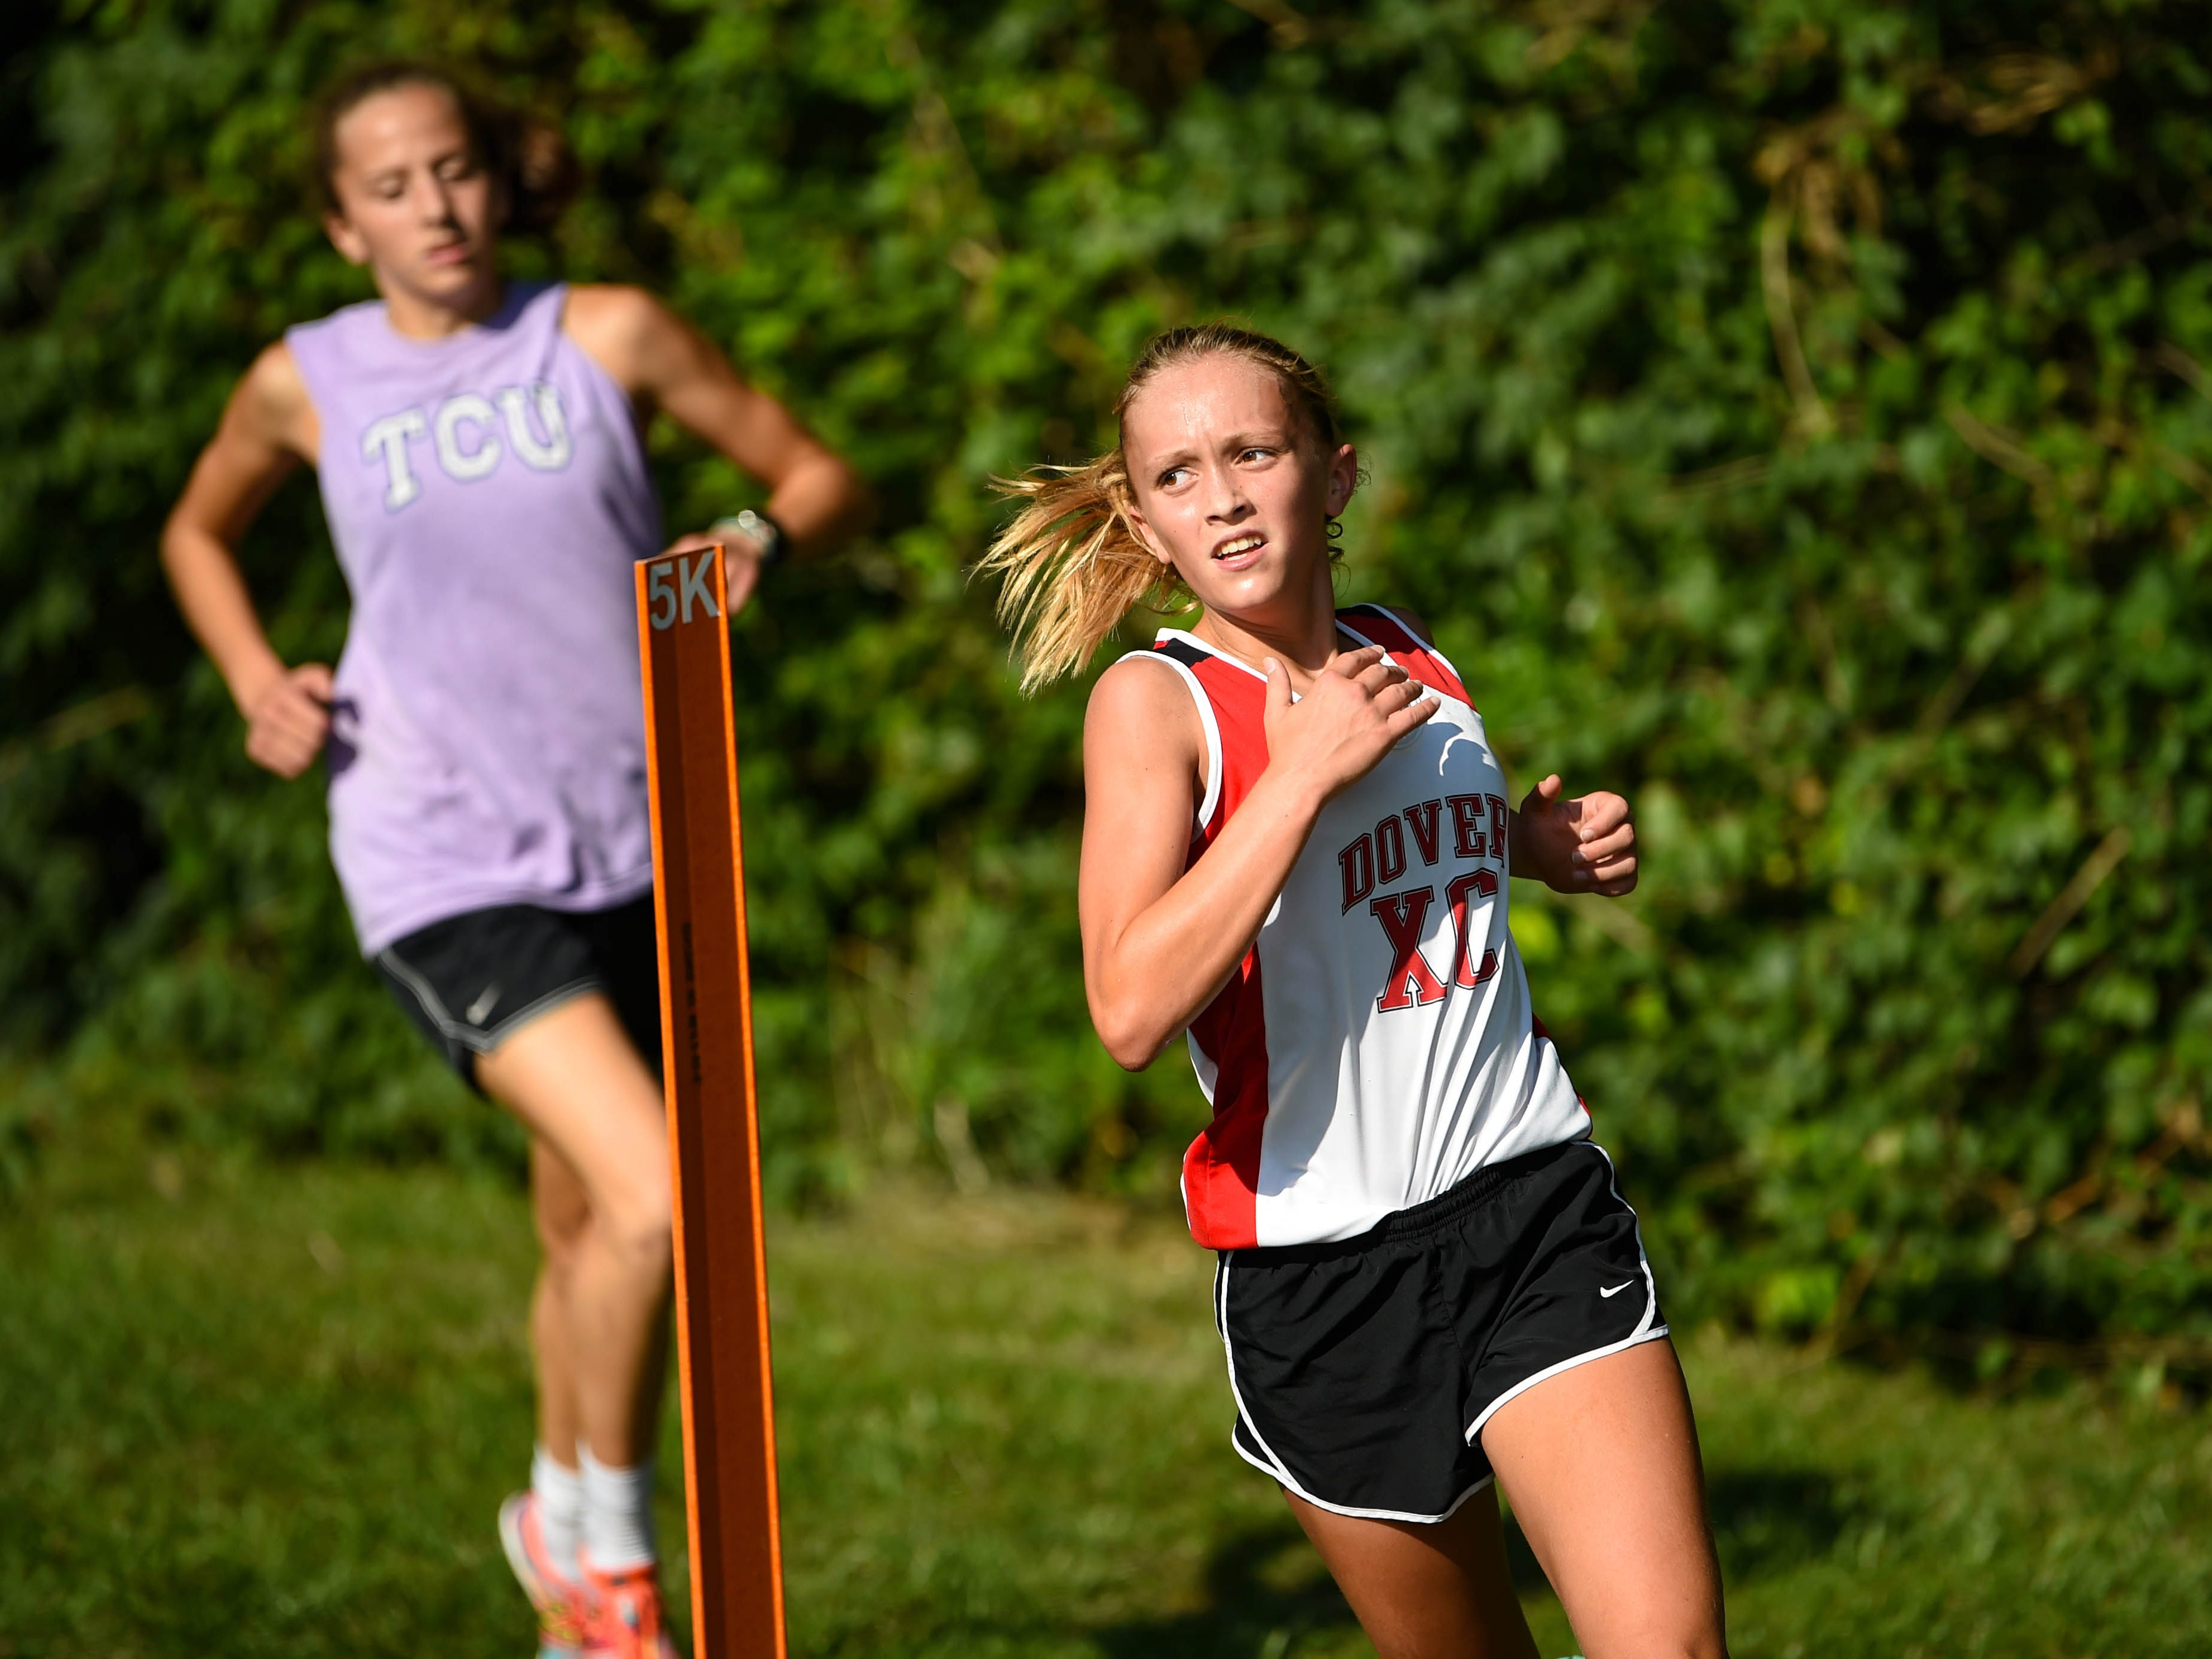 Dover High School rounds the marker during the Cross Country scrimmage at John Rudy County Park on August 30, 2018.